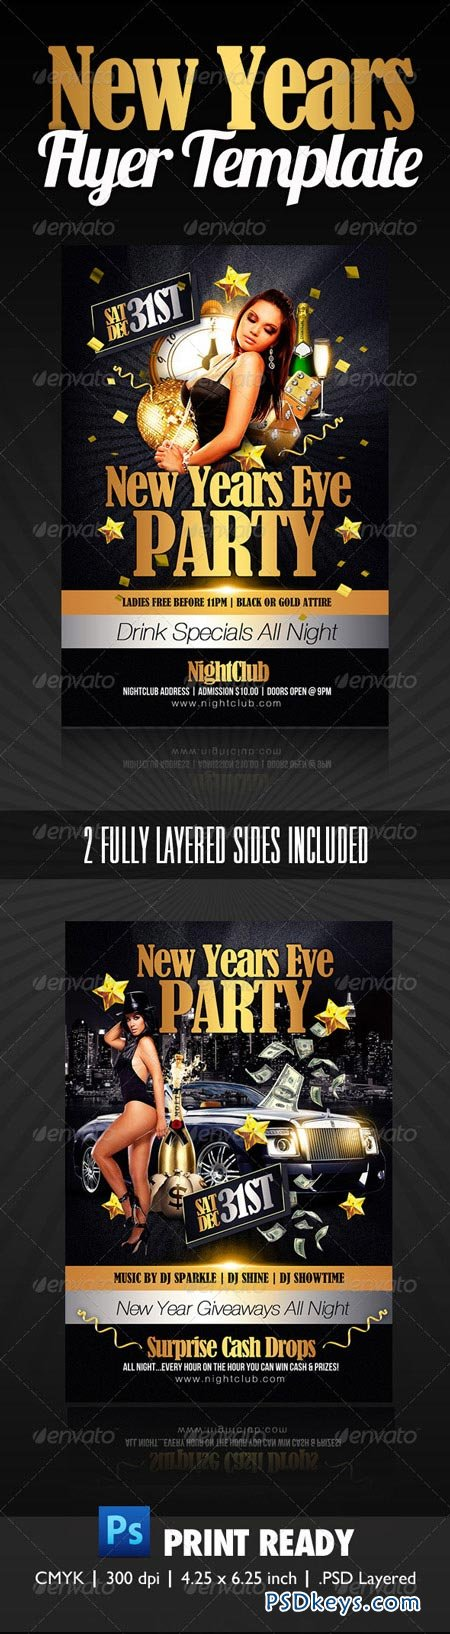 New Years Party Flyer 1127709